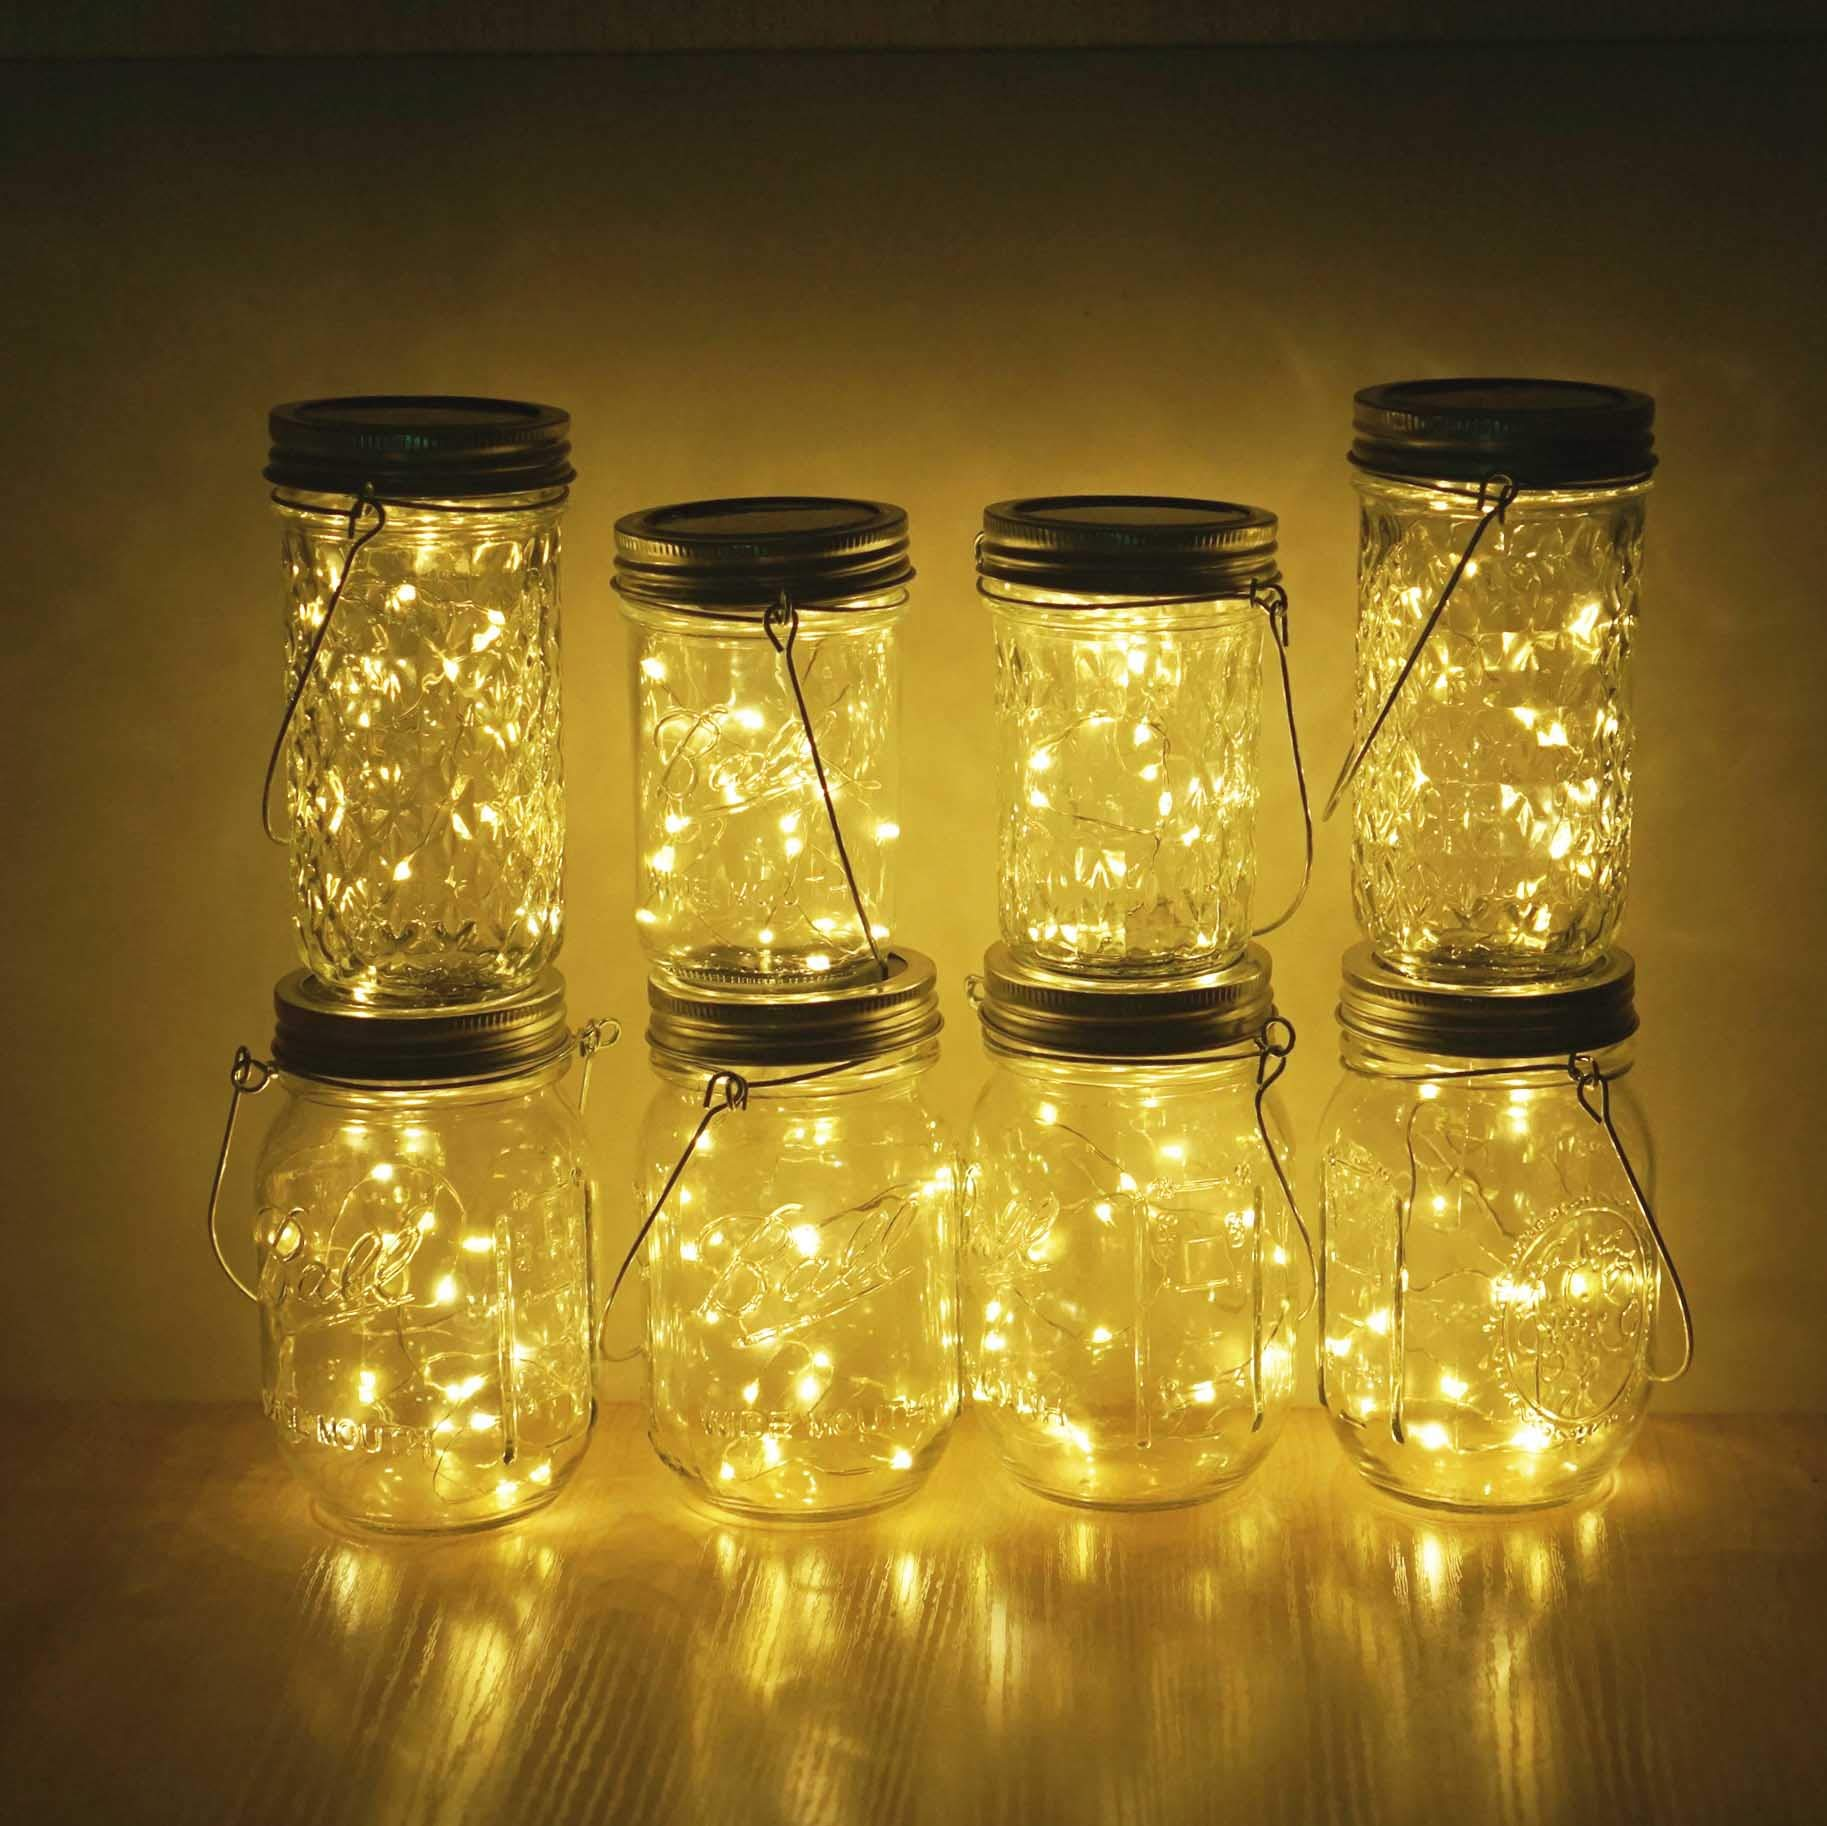 Miaro 6 Pack Mason Jar Lights, 10 LED Solar Warm White Fairy String Lights Lids Insert for Garden Deck Patio Party Wedding Christmas Decorative Lighting Fit for Regular Mouth Jars with Hangers by Miaro (Image #5)